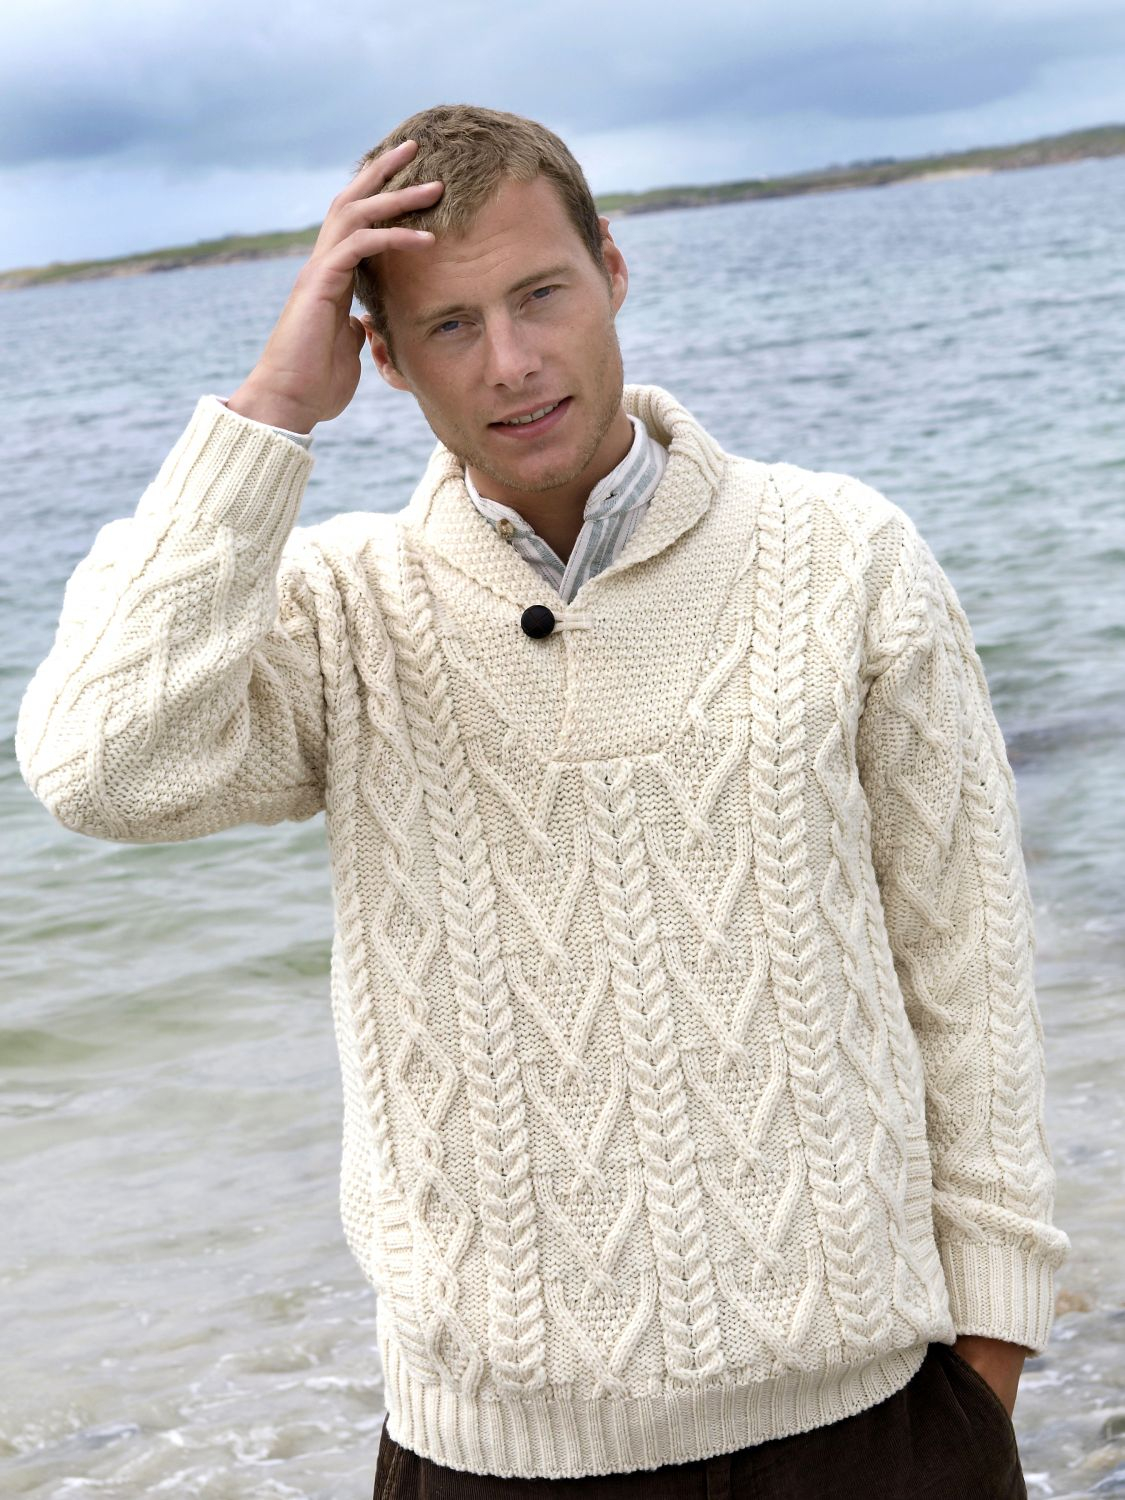 Aran Jumper Knitting Patterns Intricately Patterned Shawl Neck Aran Sweater